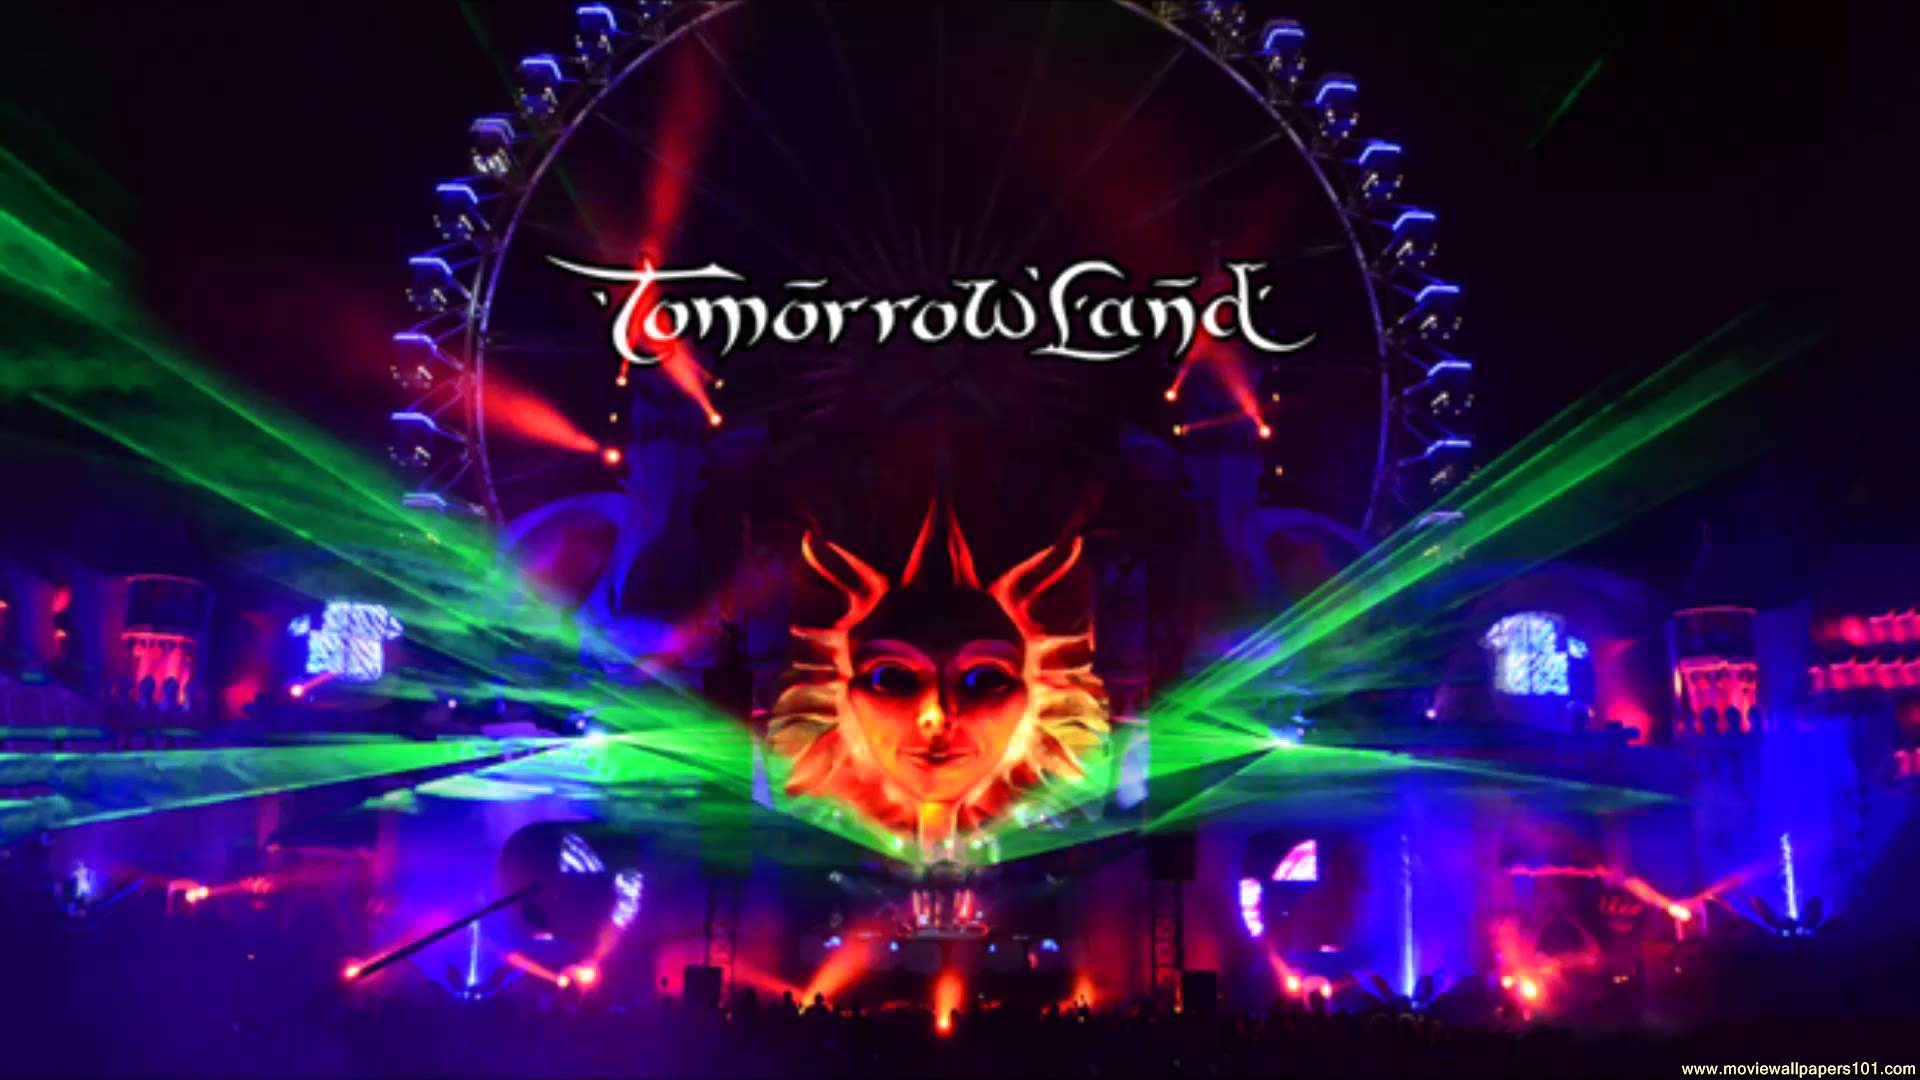 TomorrowLand 2015 Movie Poster HD Wallpaper   Stylish HD Wallpapers 1920x1080